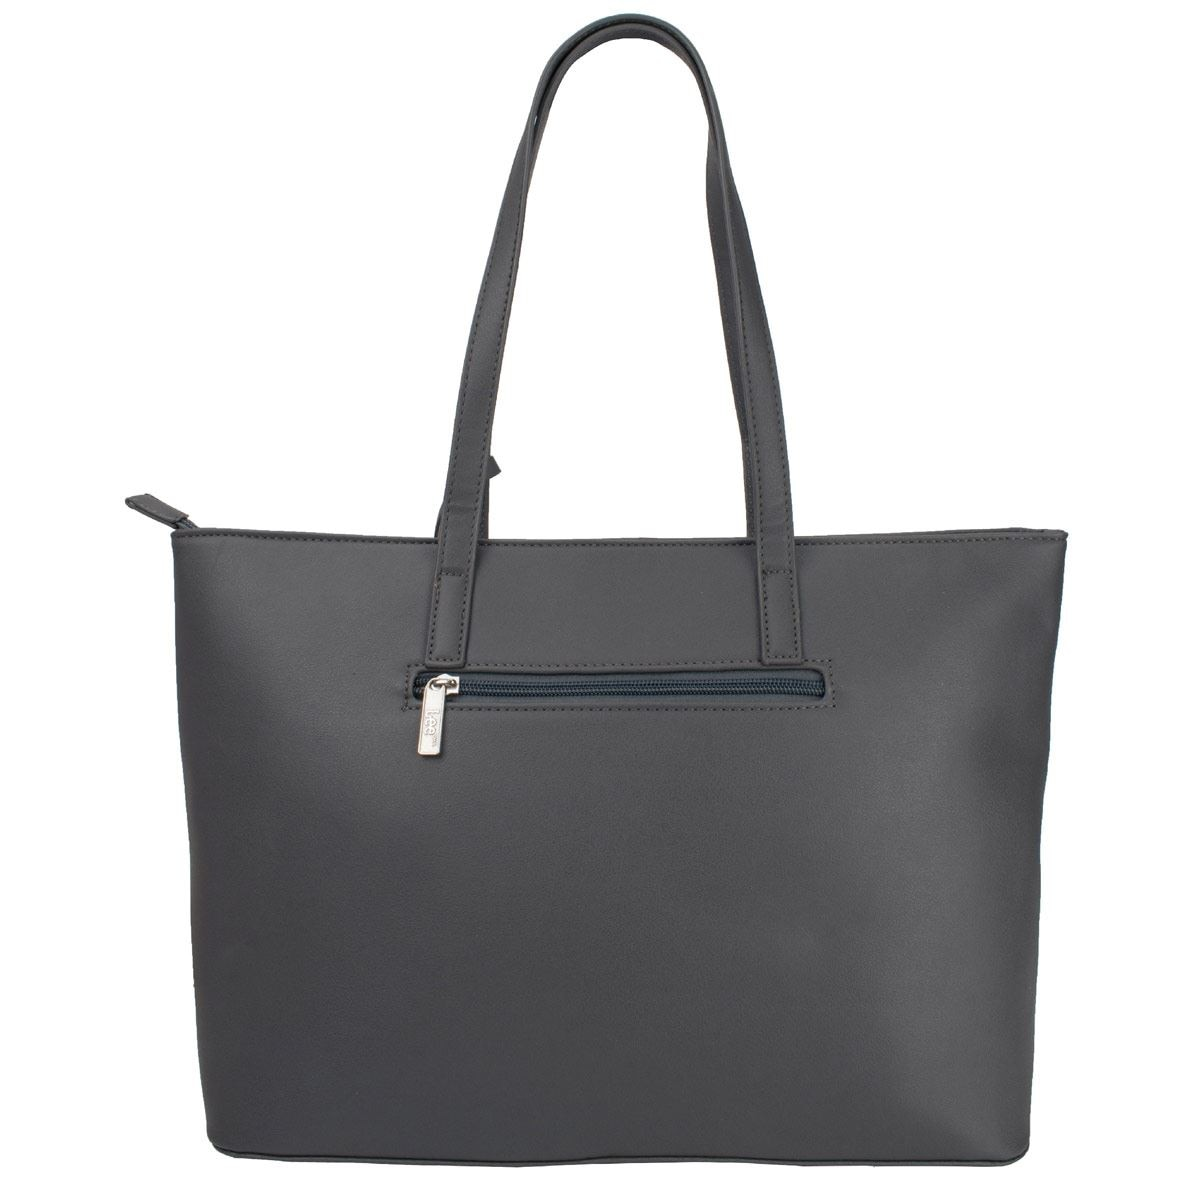 Bolso Tote Lee gris